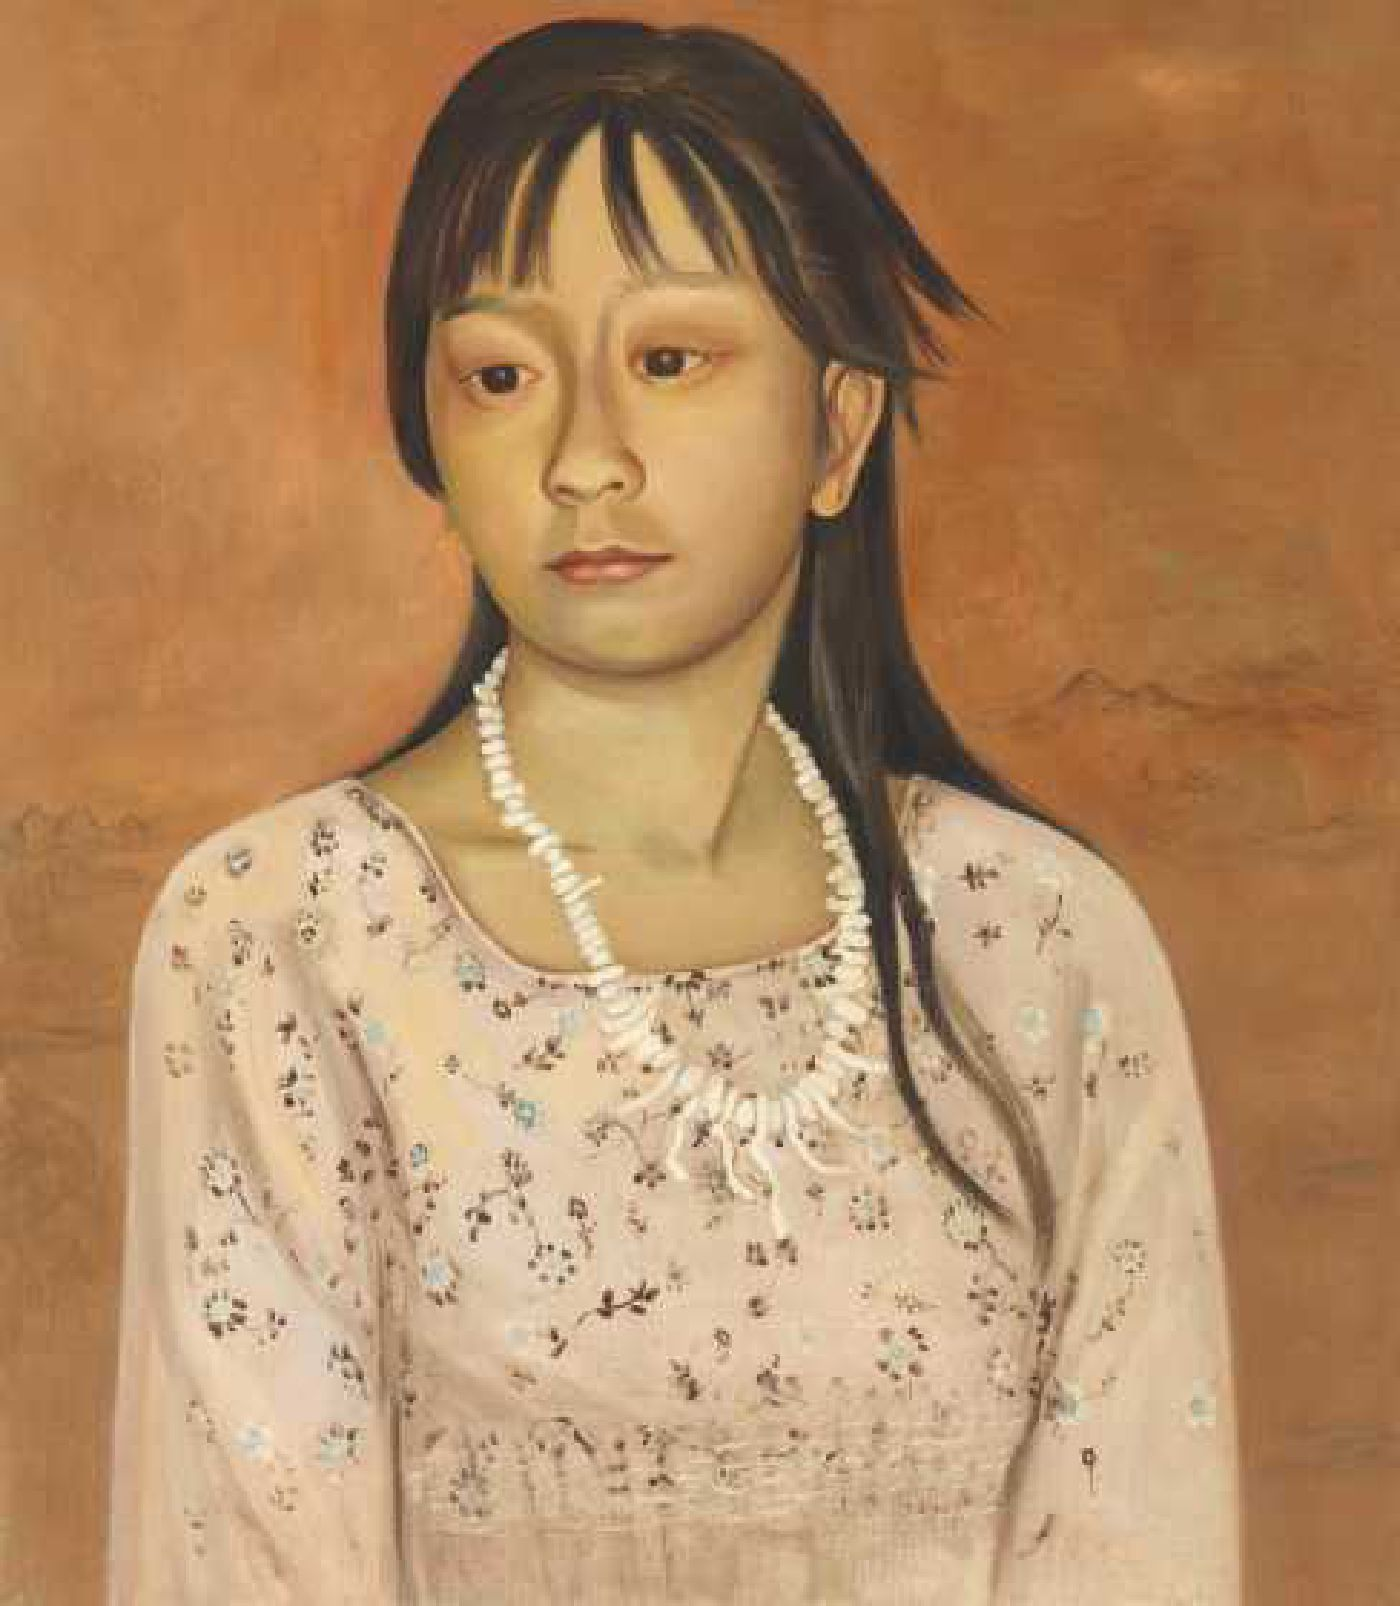 Young Girl with Shell Necklace - oil on linen,  23 x 20 inches, 2009-2010